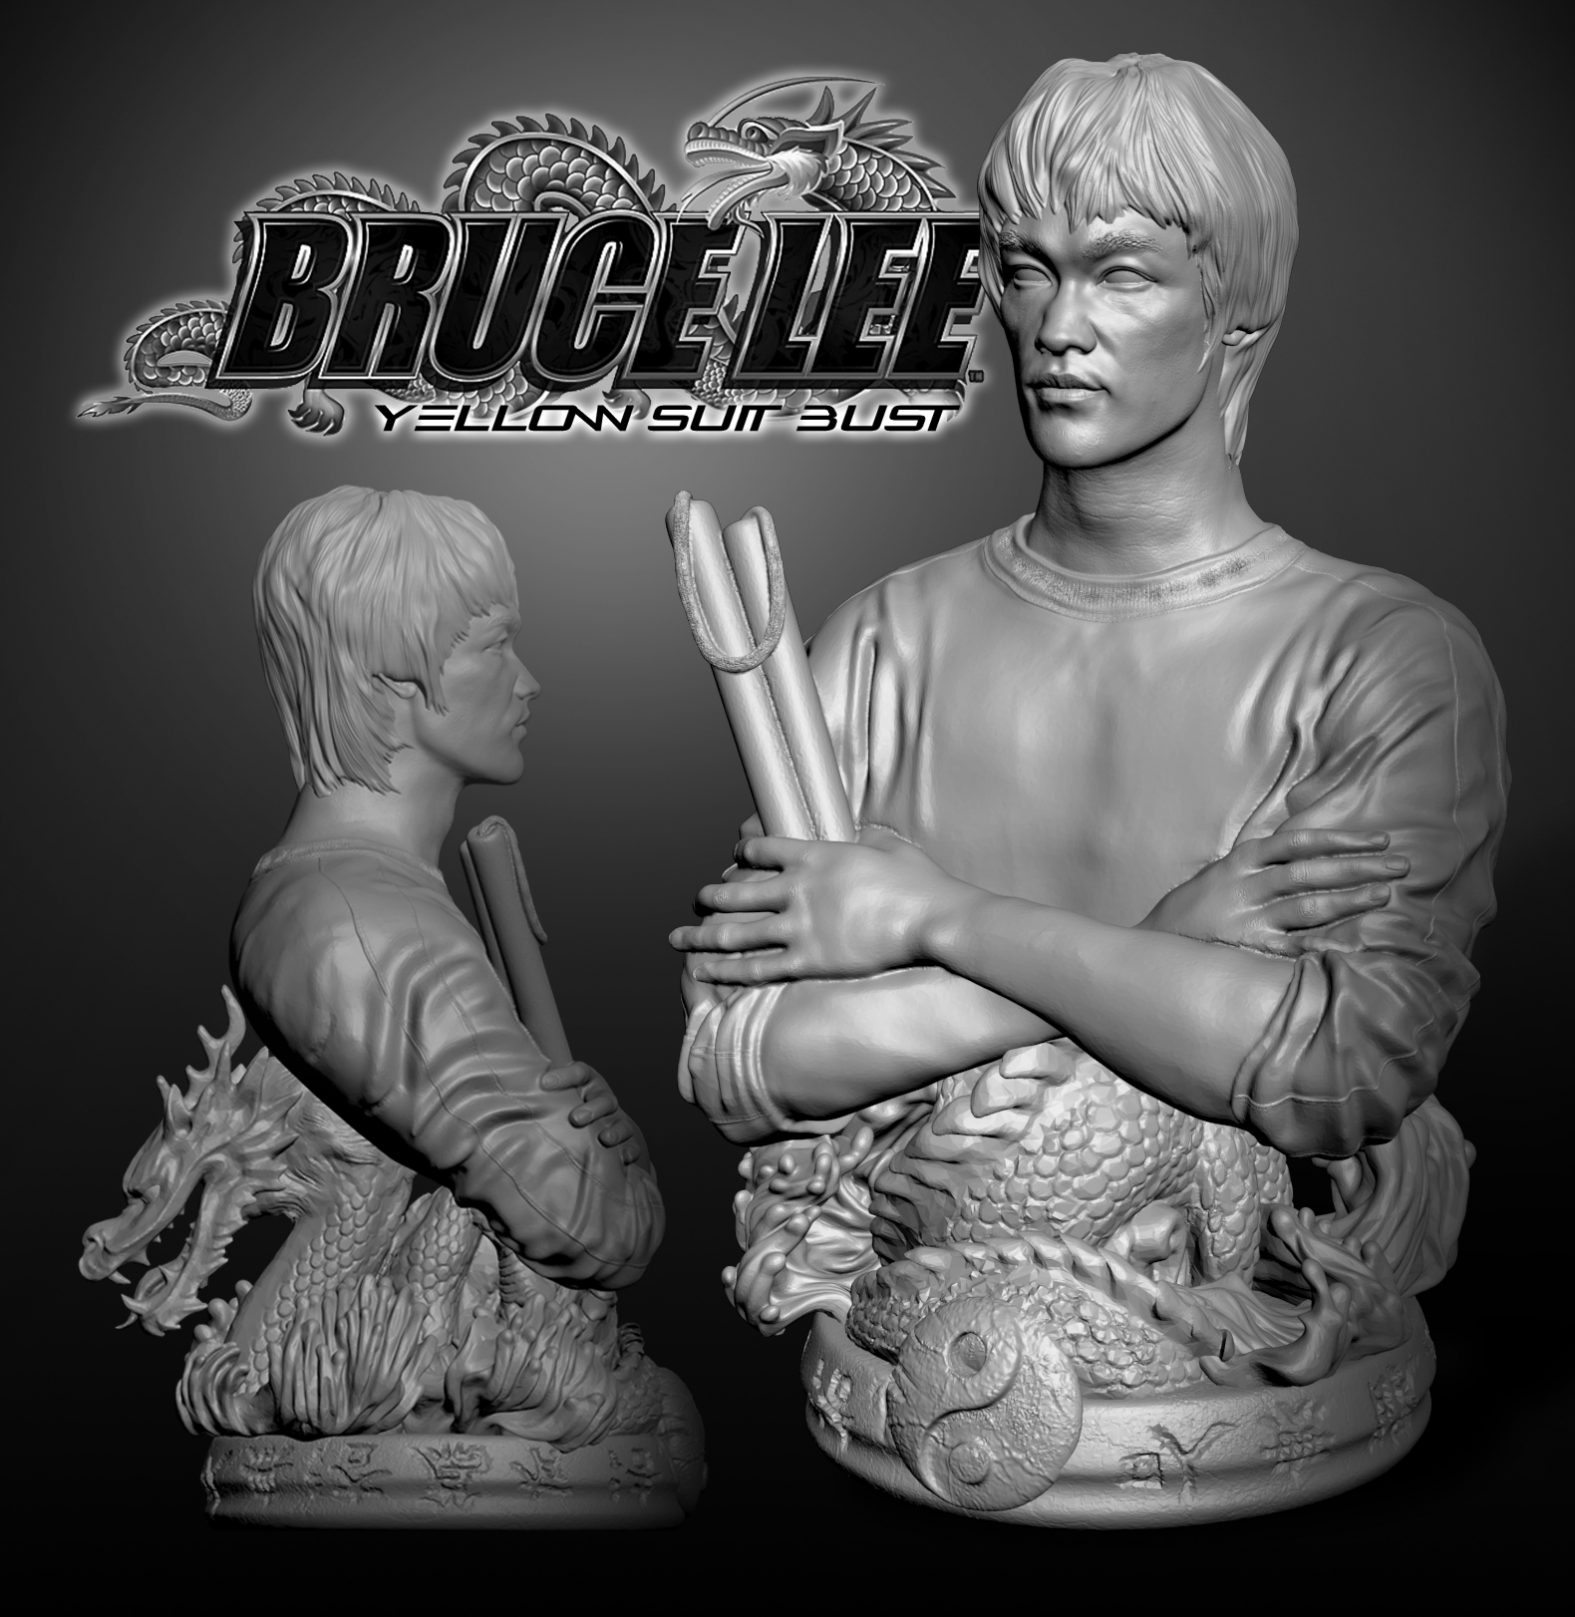 Bruce Lee Yellow Suit Bust插图